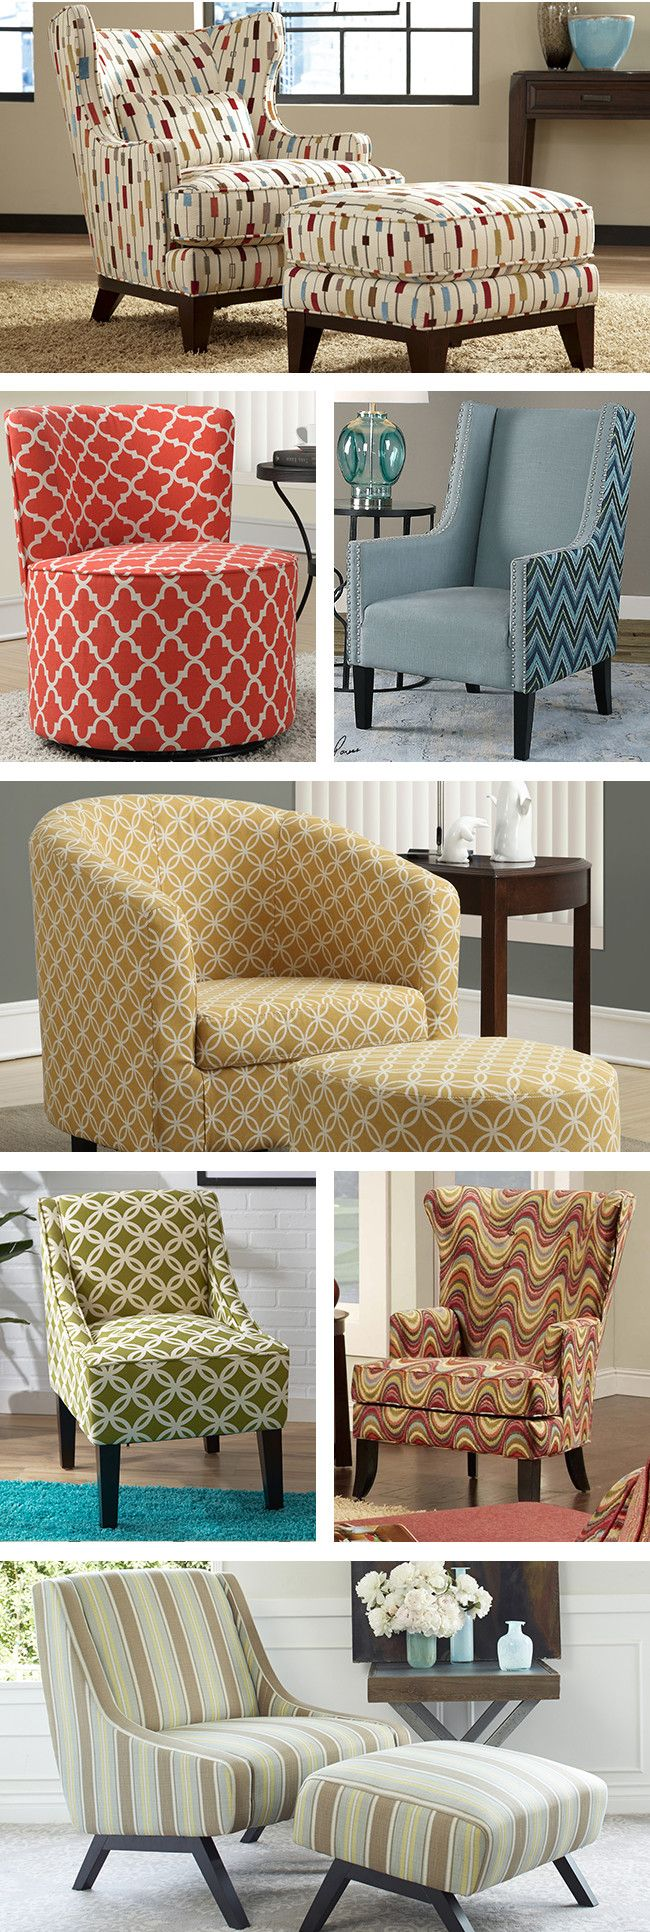 Accents chairs are a perfect way to express your personal style. Pair matching swoop arm styles with an elegant end table in your living room to create an instant seating group. Visit Wayfair and sign up today to get access to exclusive deals everyday up to 70% off. Free shipping on all orders over $49.